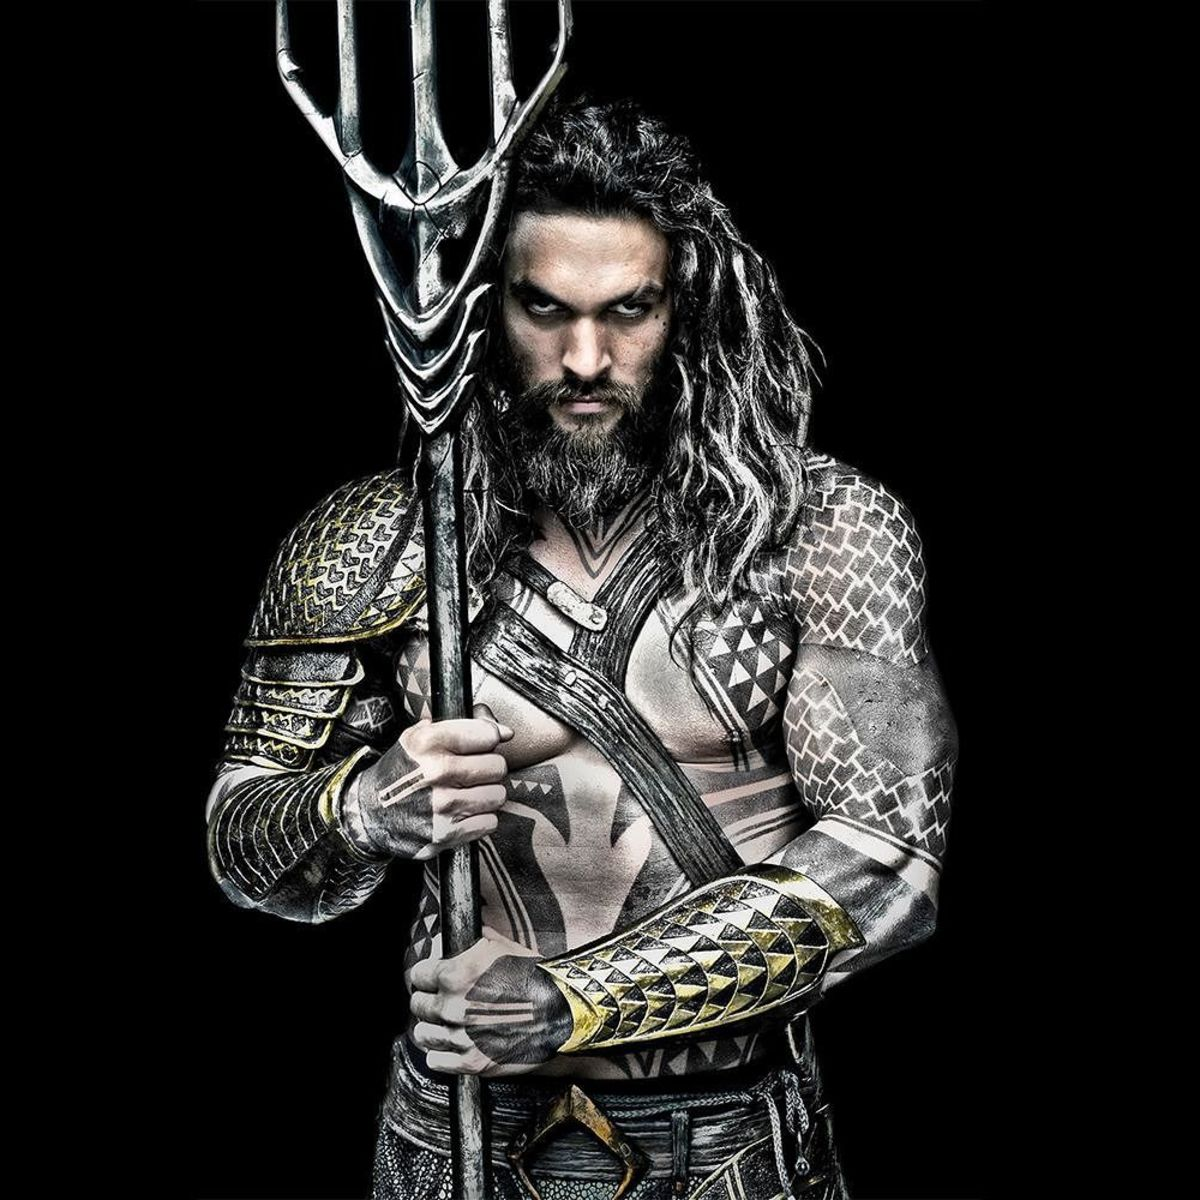 Jason Momoa Promoted 'Aquaman' In The Most Jason Momoa Way Possible